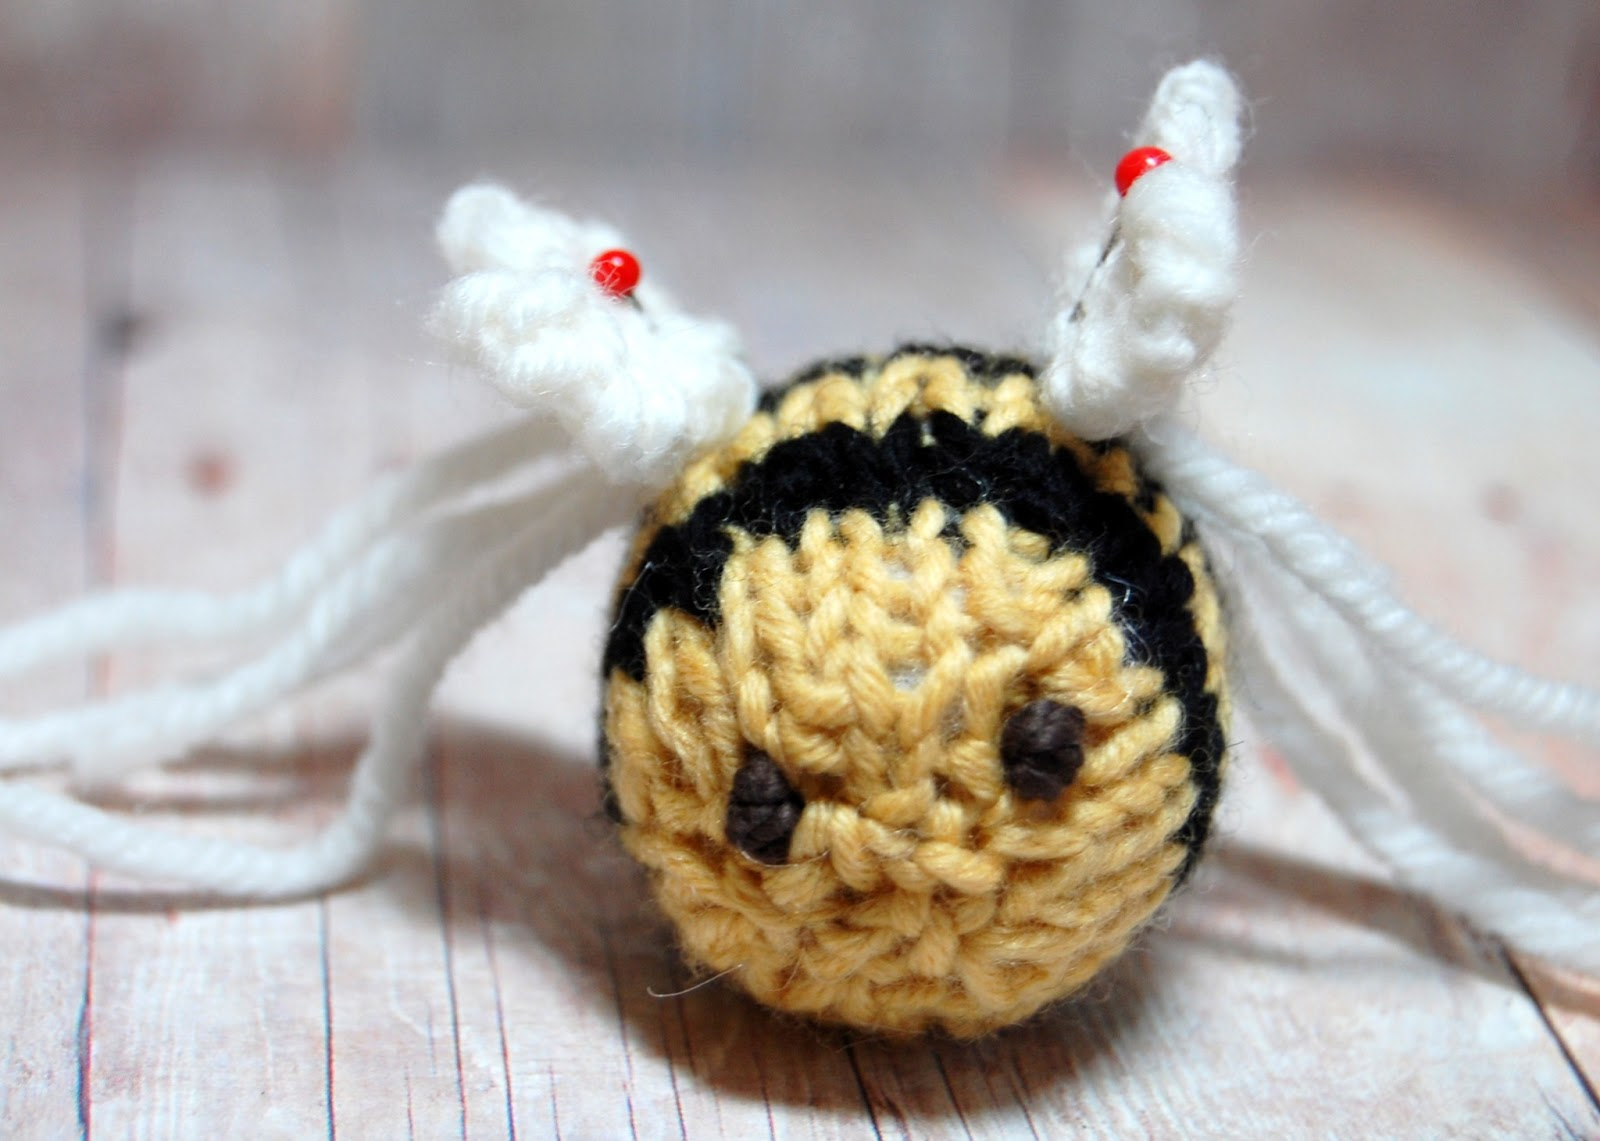 Bumble Bee Knitting Pattern : Sweet Bauer Knits: Bumble Bee Knitting Pattern